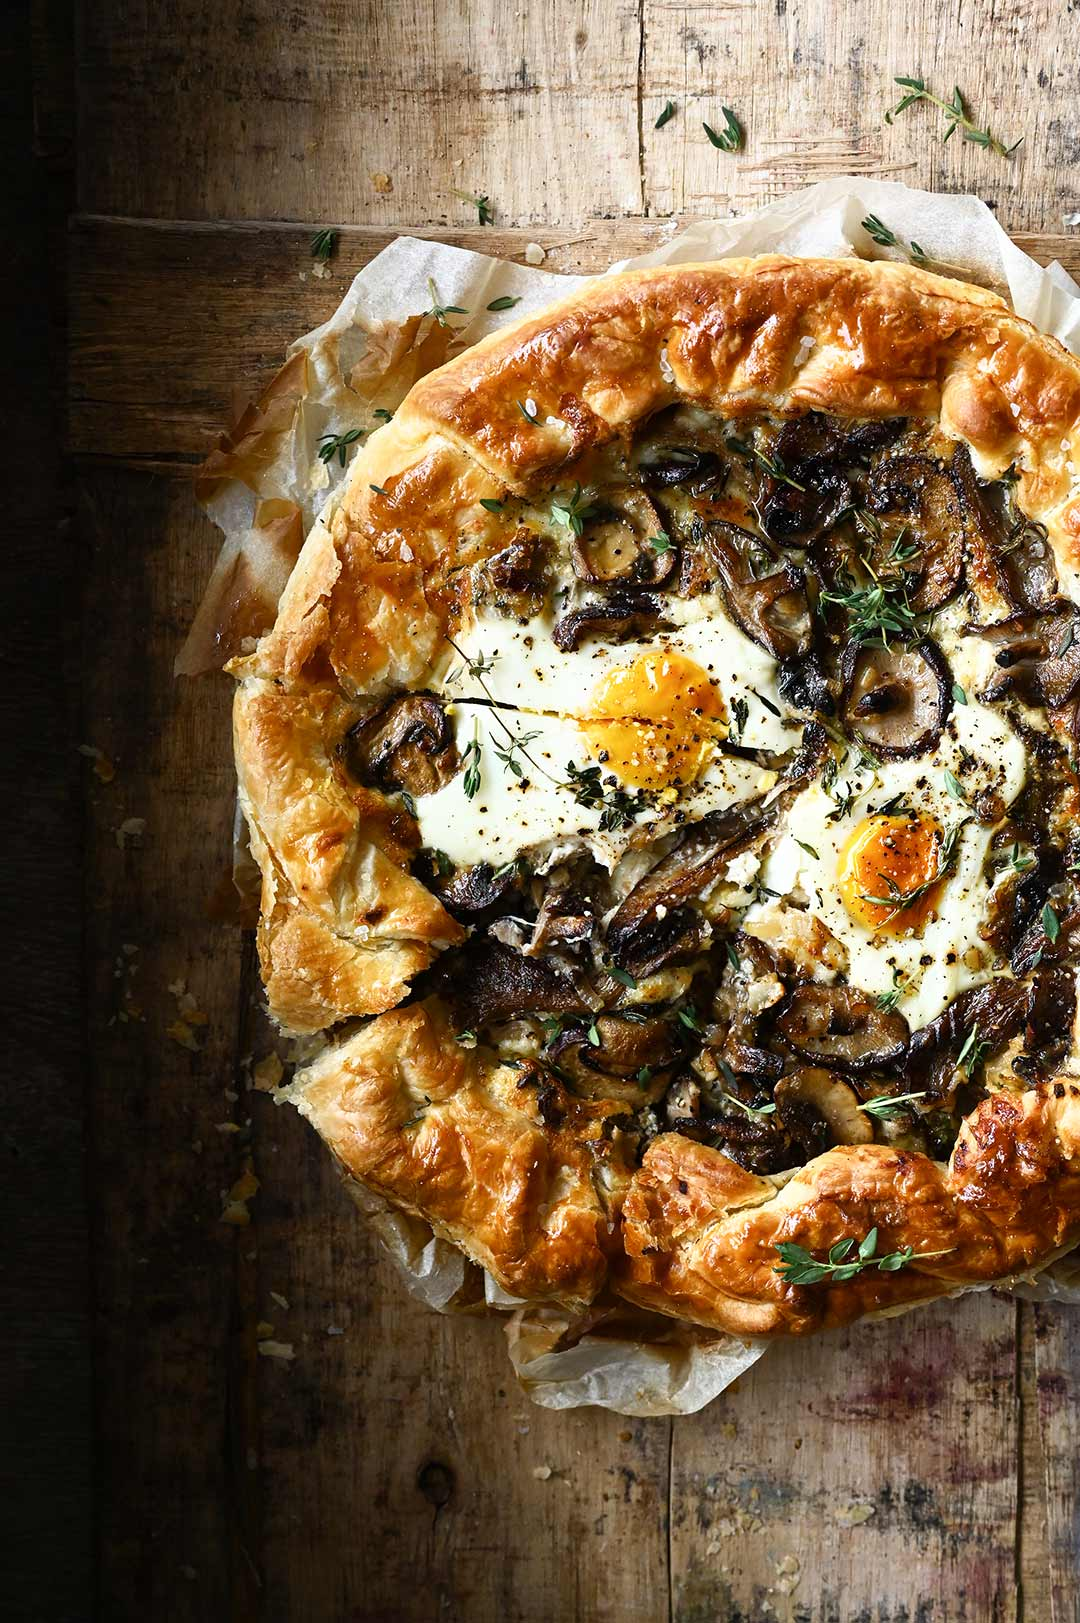 serving dumplings | Cheesy Mushroom Tart with Eggs